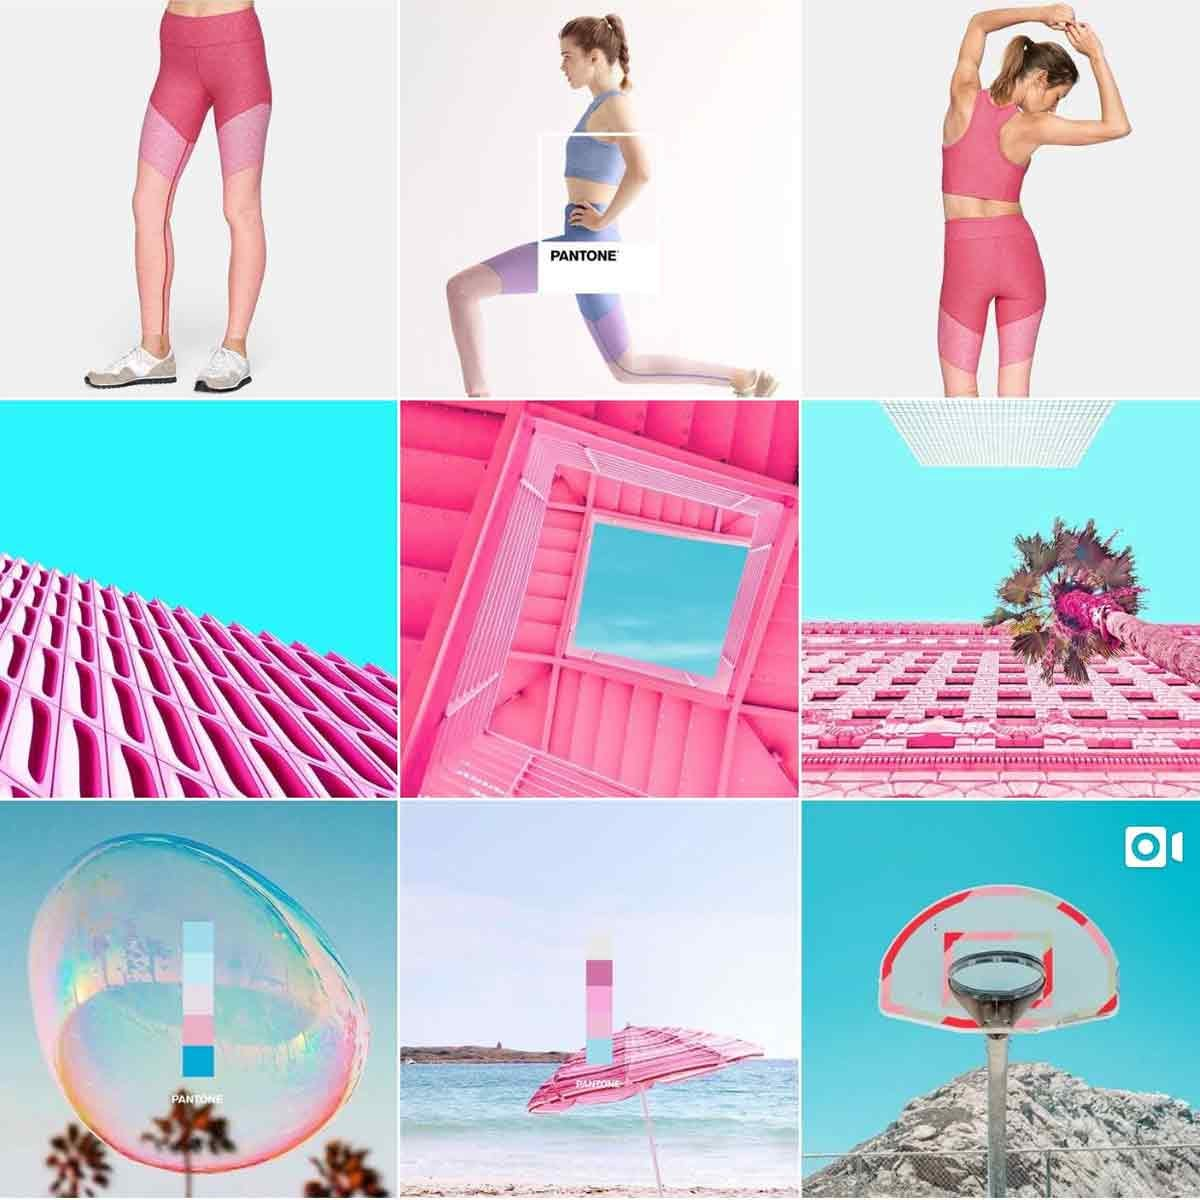 Colorful teal and pink photos from the Pantone Instagram account